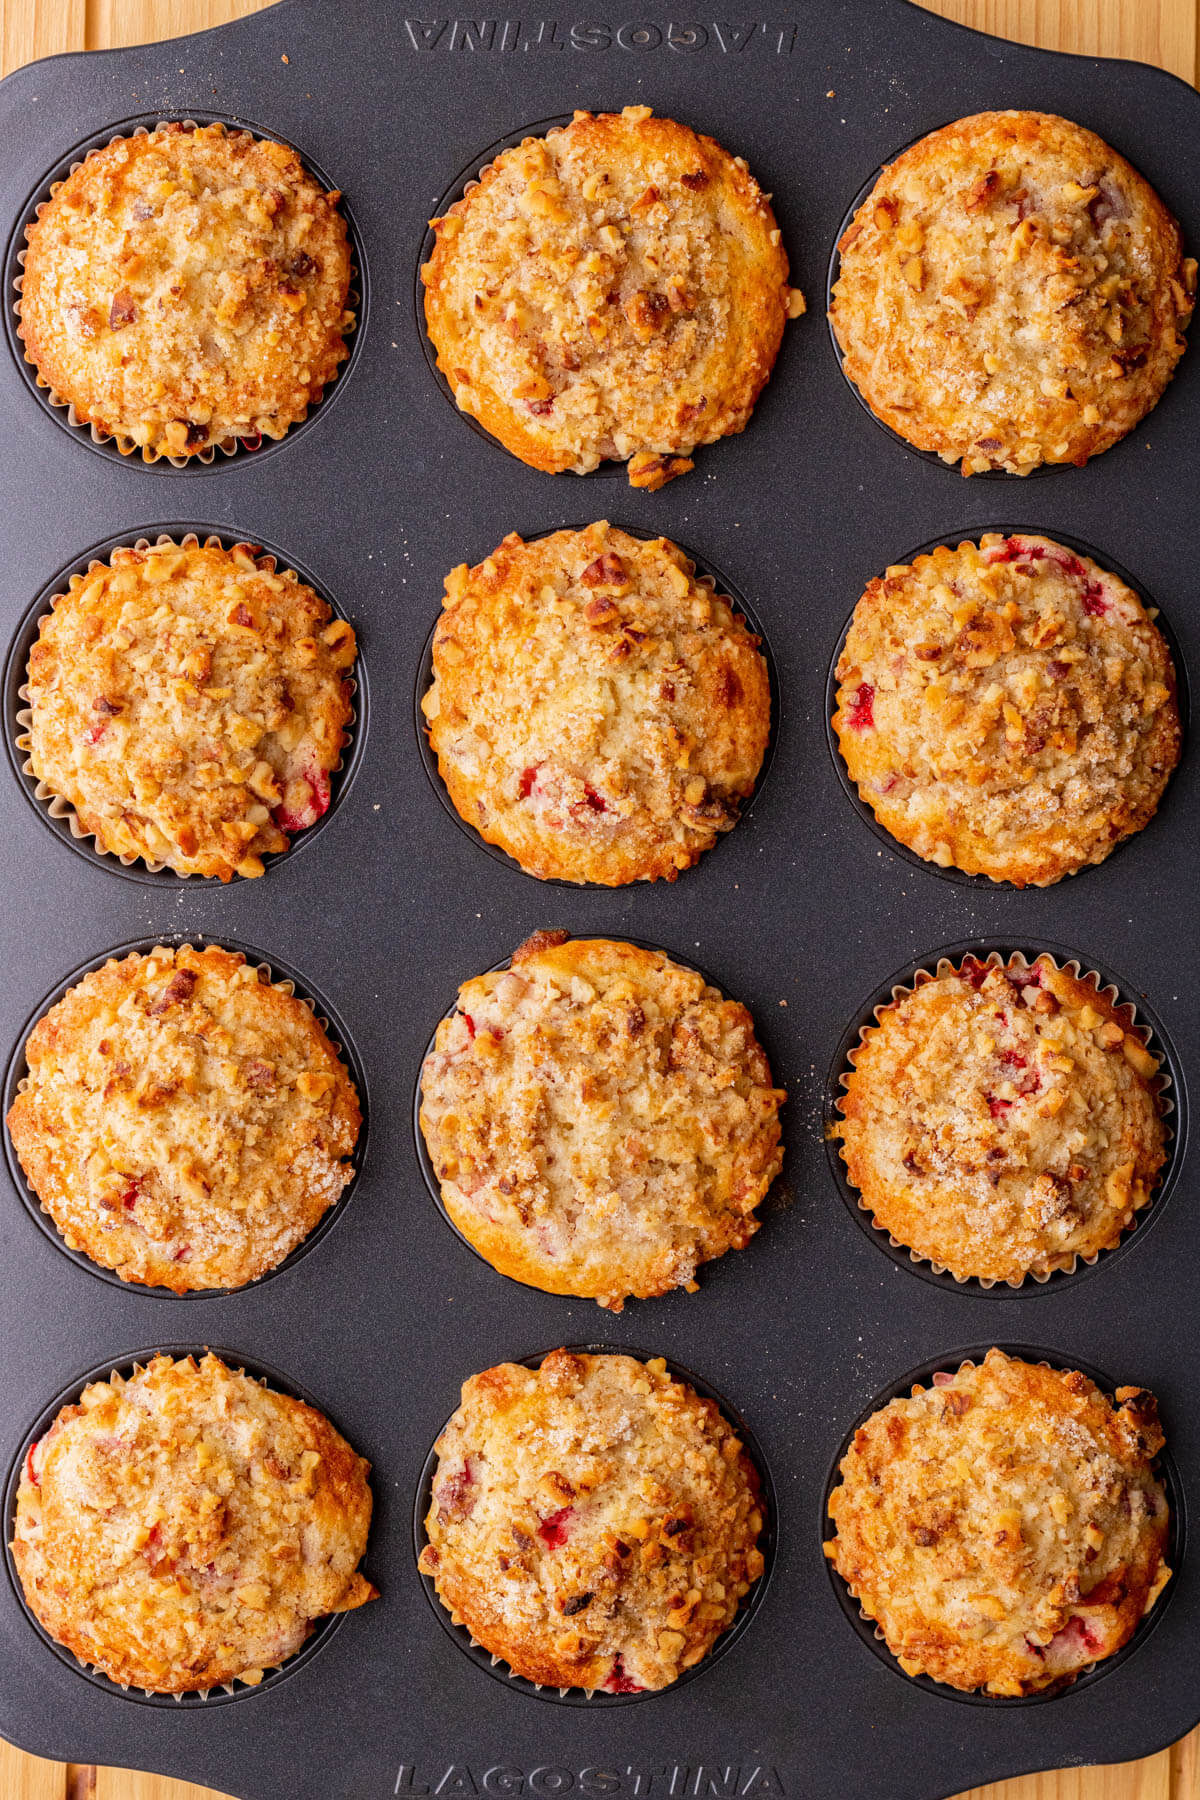 Golden baked strawberry rhubarb muffins in a muffin pan.